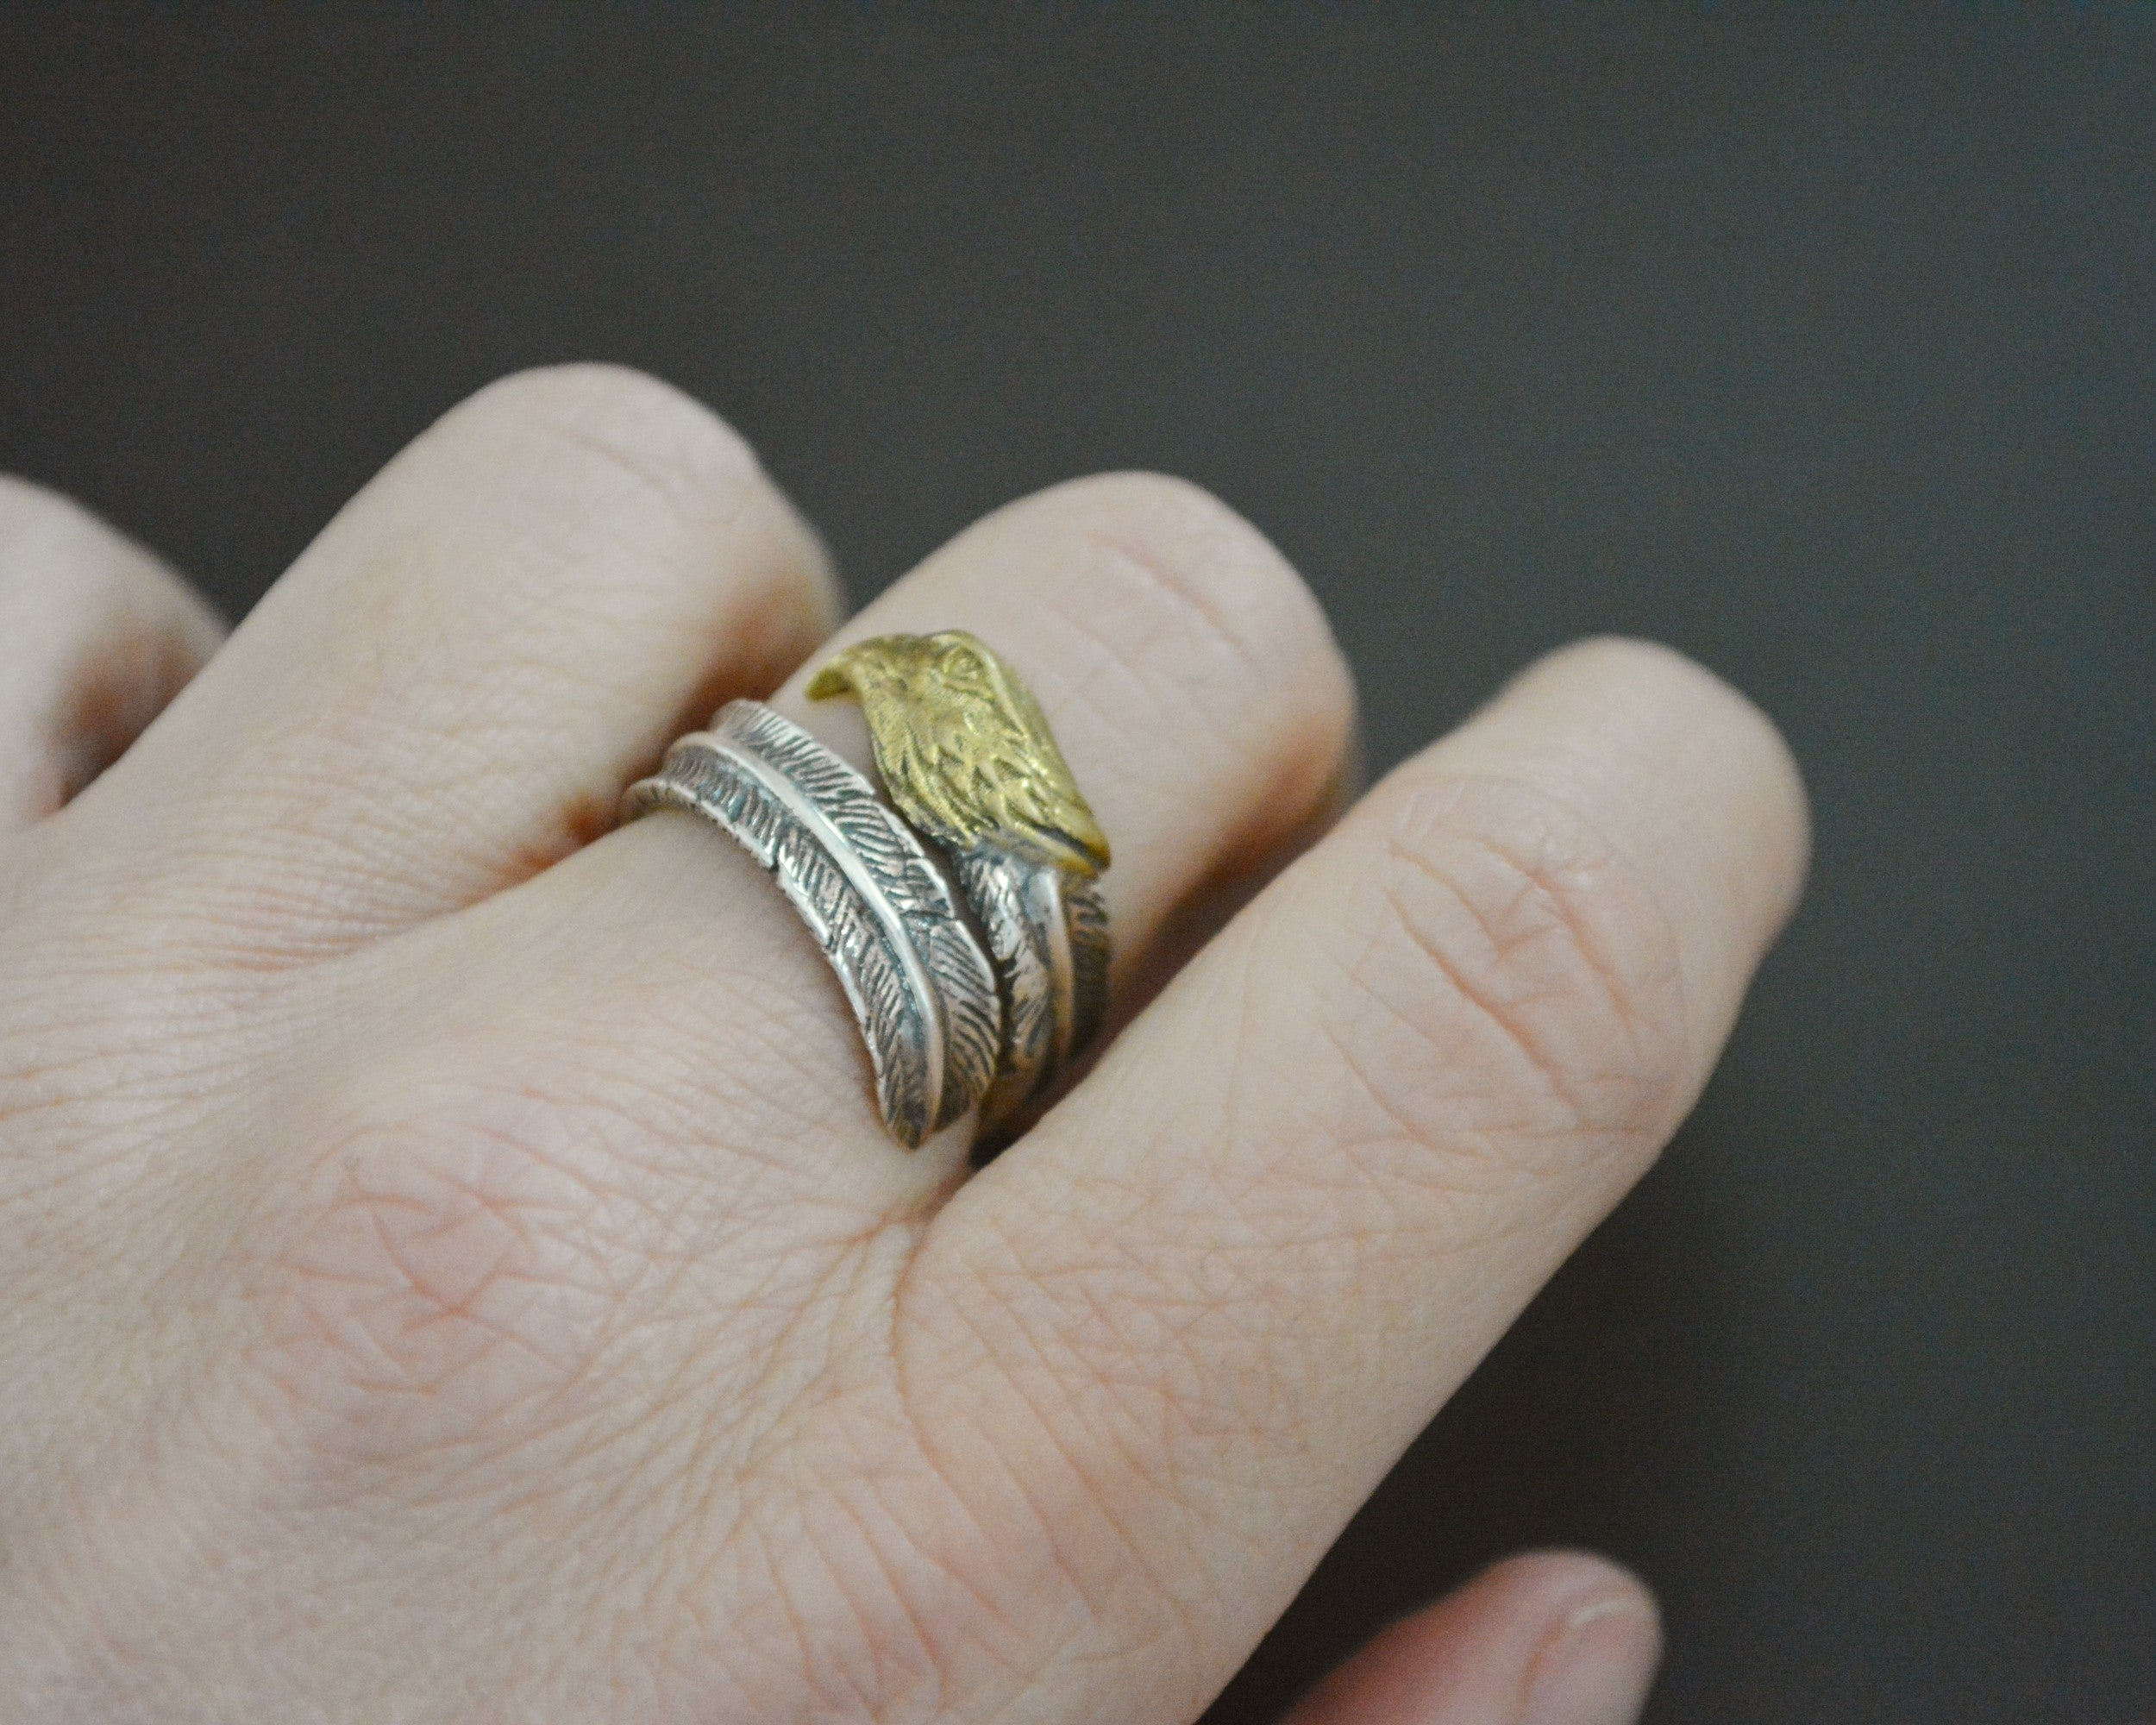 Eagle Feather Wrap Ring - Size 6.5 Adjustable